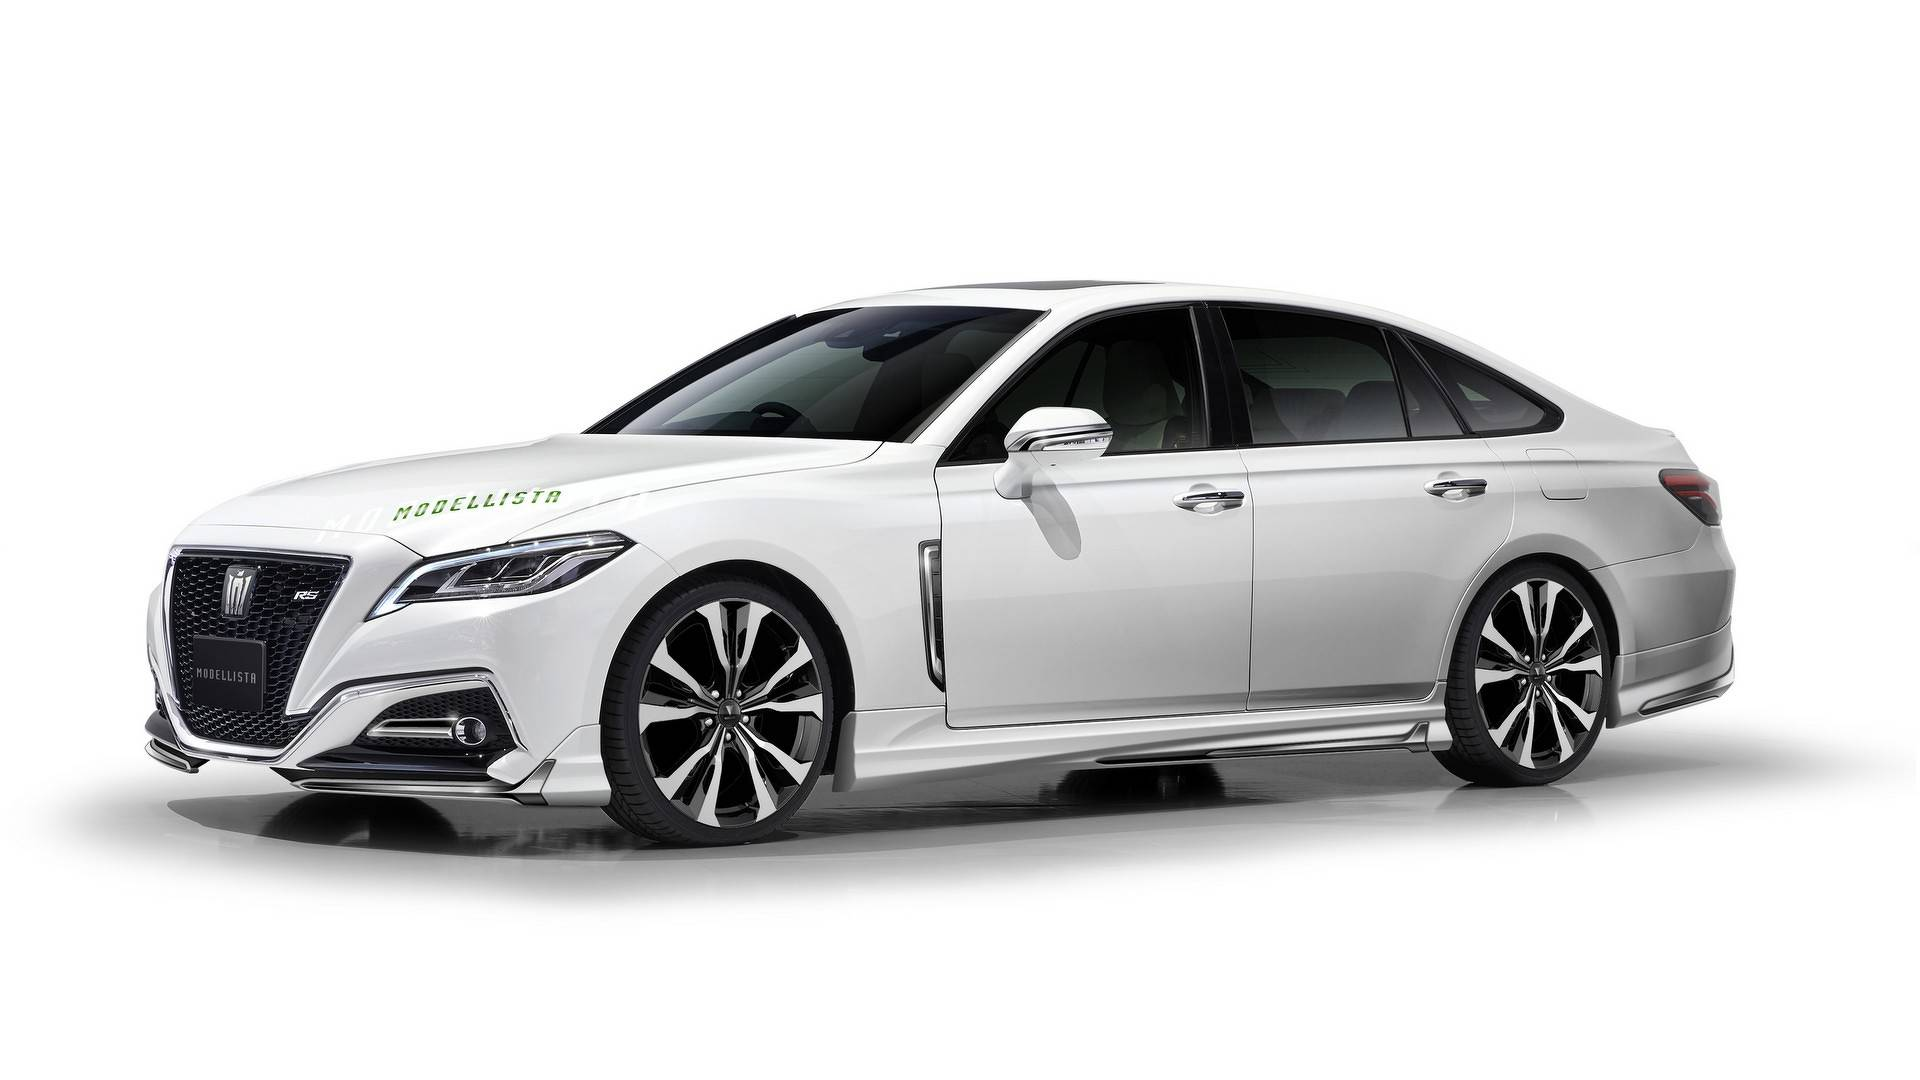 2018 toyota crown modellista is all show but no go autoevolution